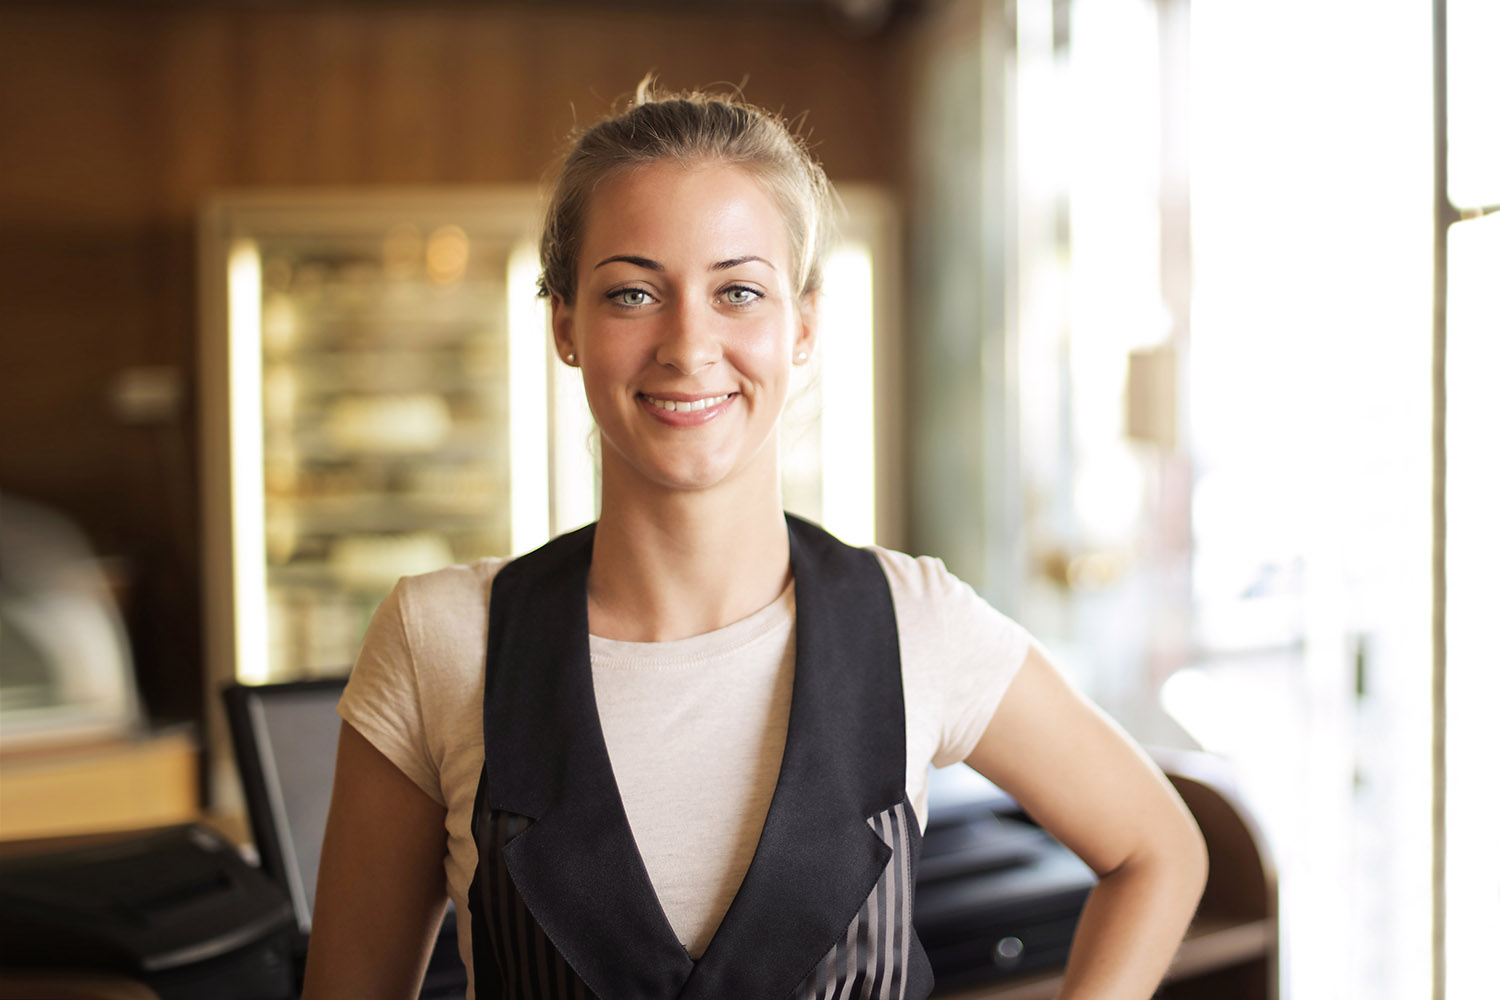 Young waitress smiling for the camera.